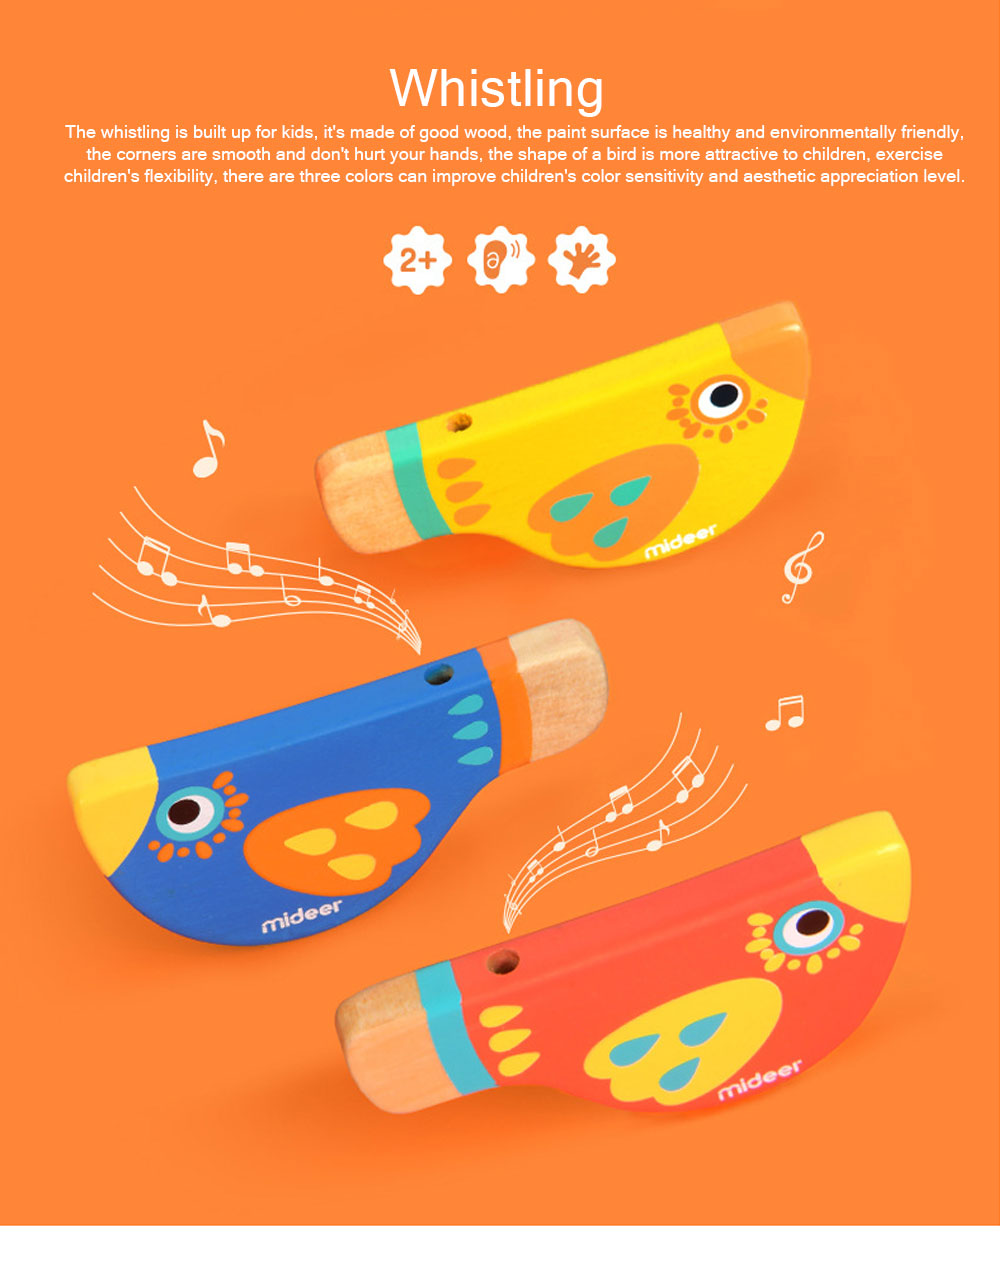 Wood Bird Shape Whistle with Colorful Healthy Paint, Play Toys for Children More than 2 Years, Smooth Corners Educational Toy 0